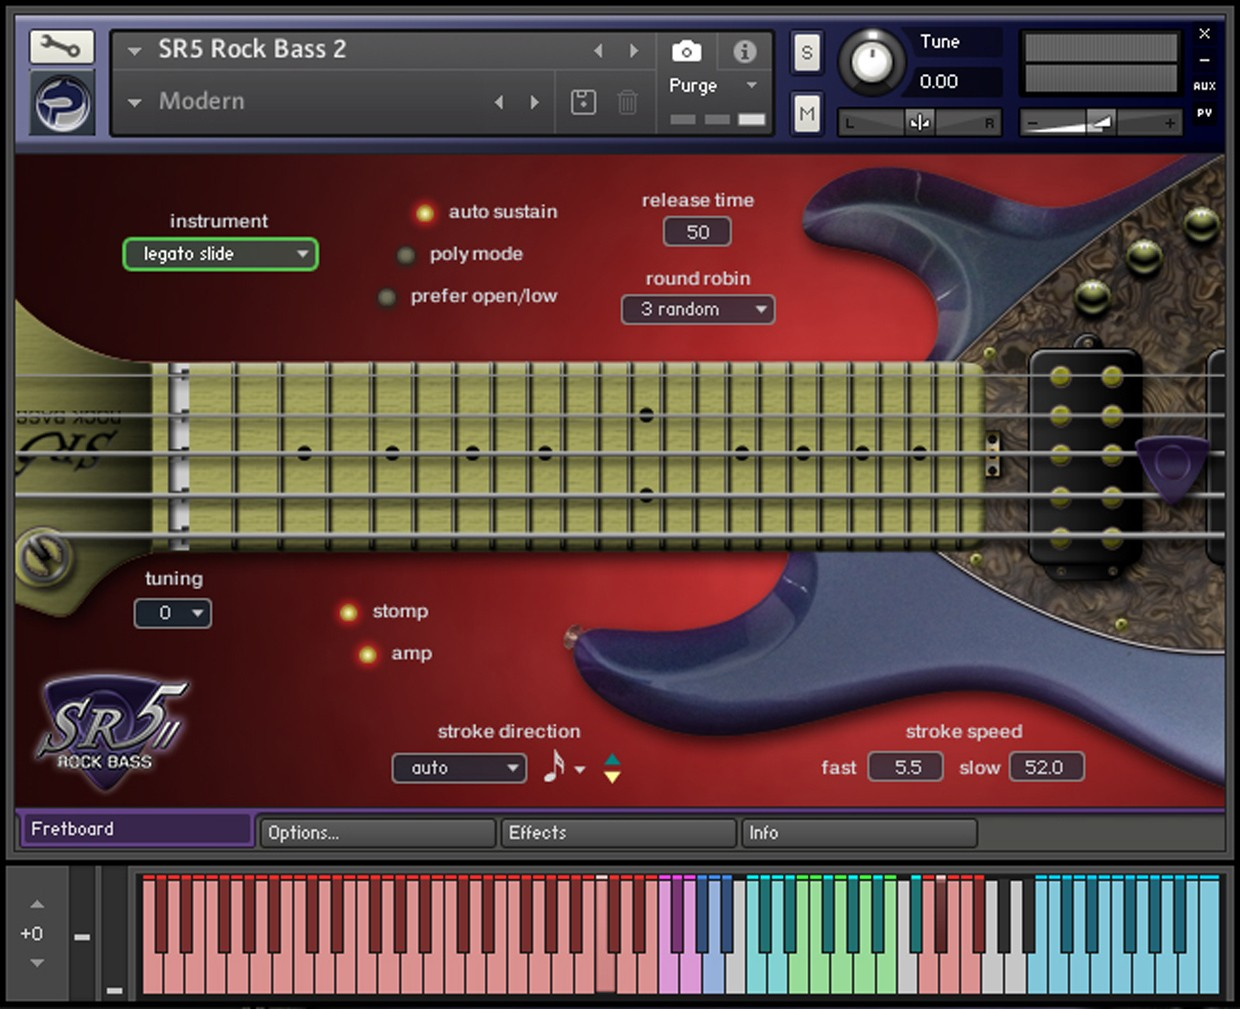 SR5 Rock Bass 2 Main GUI